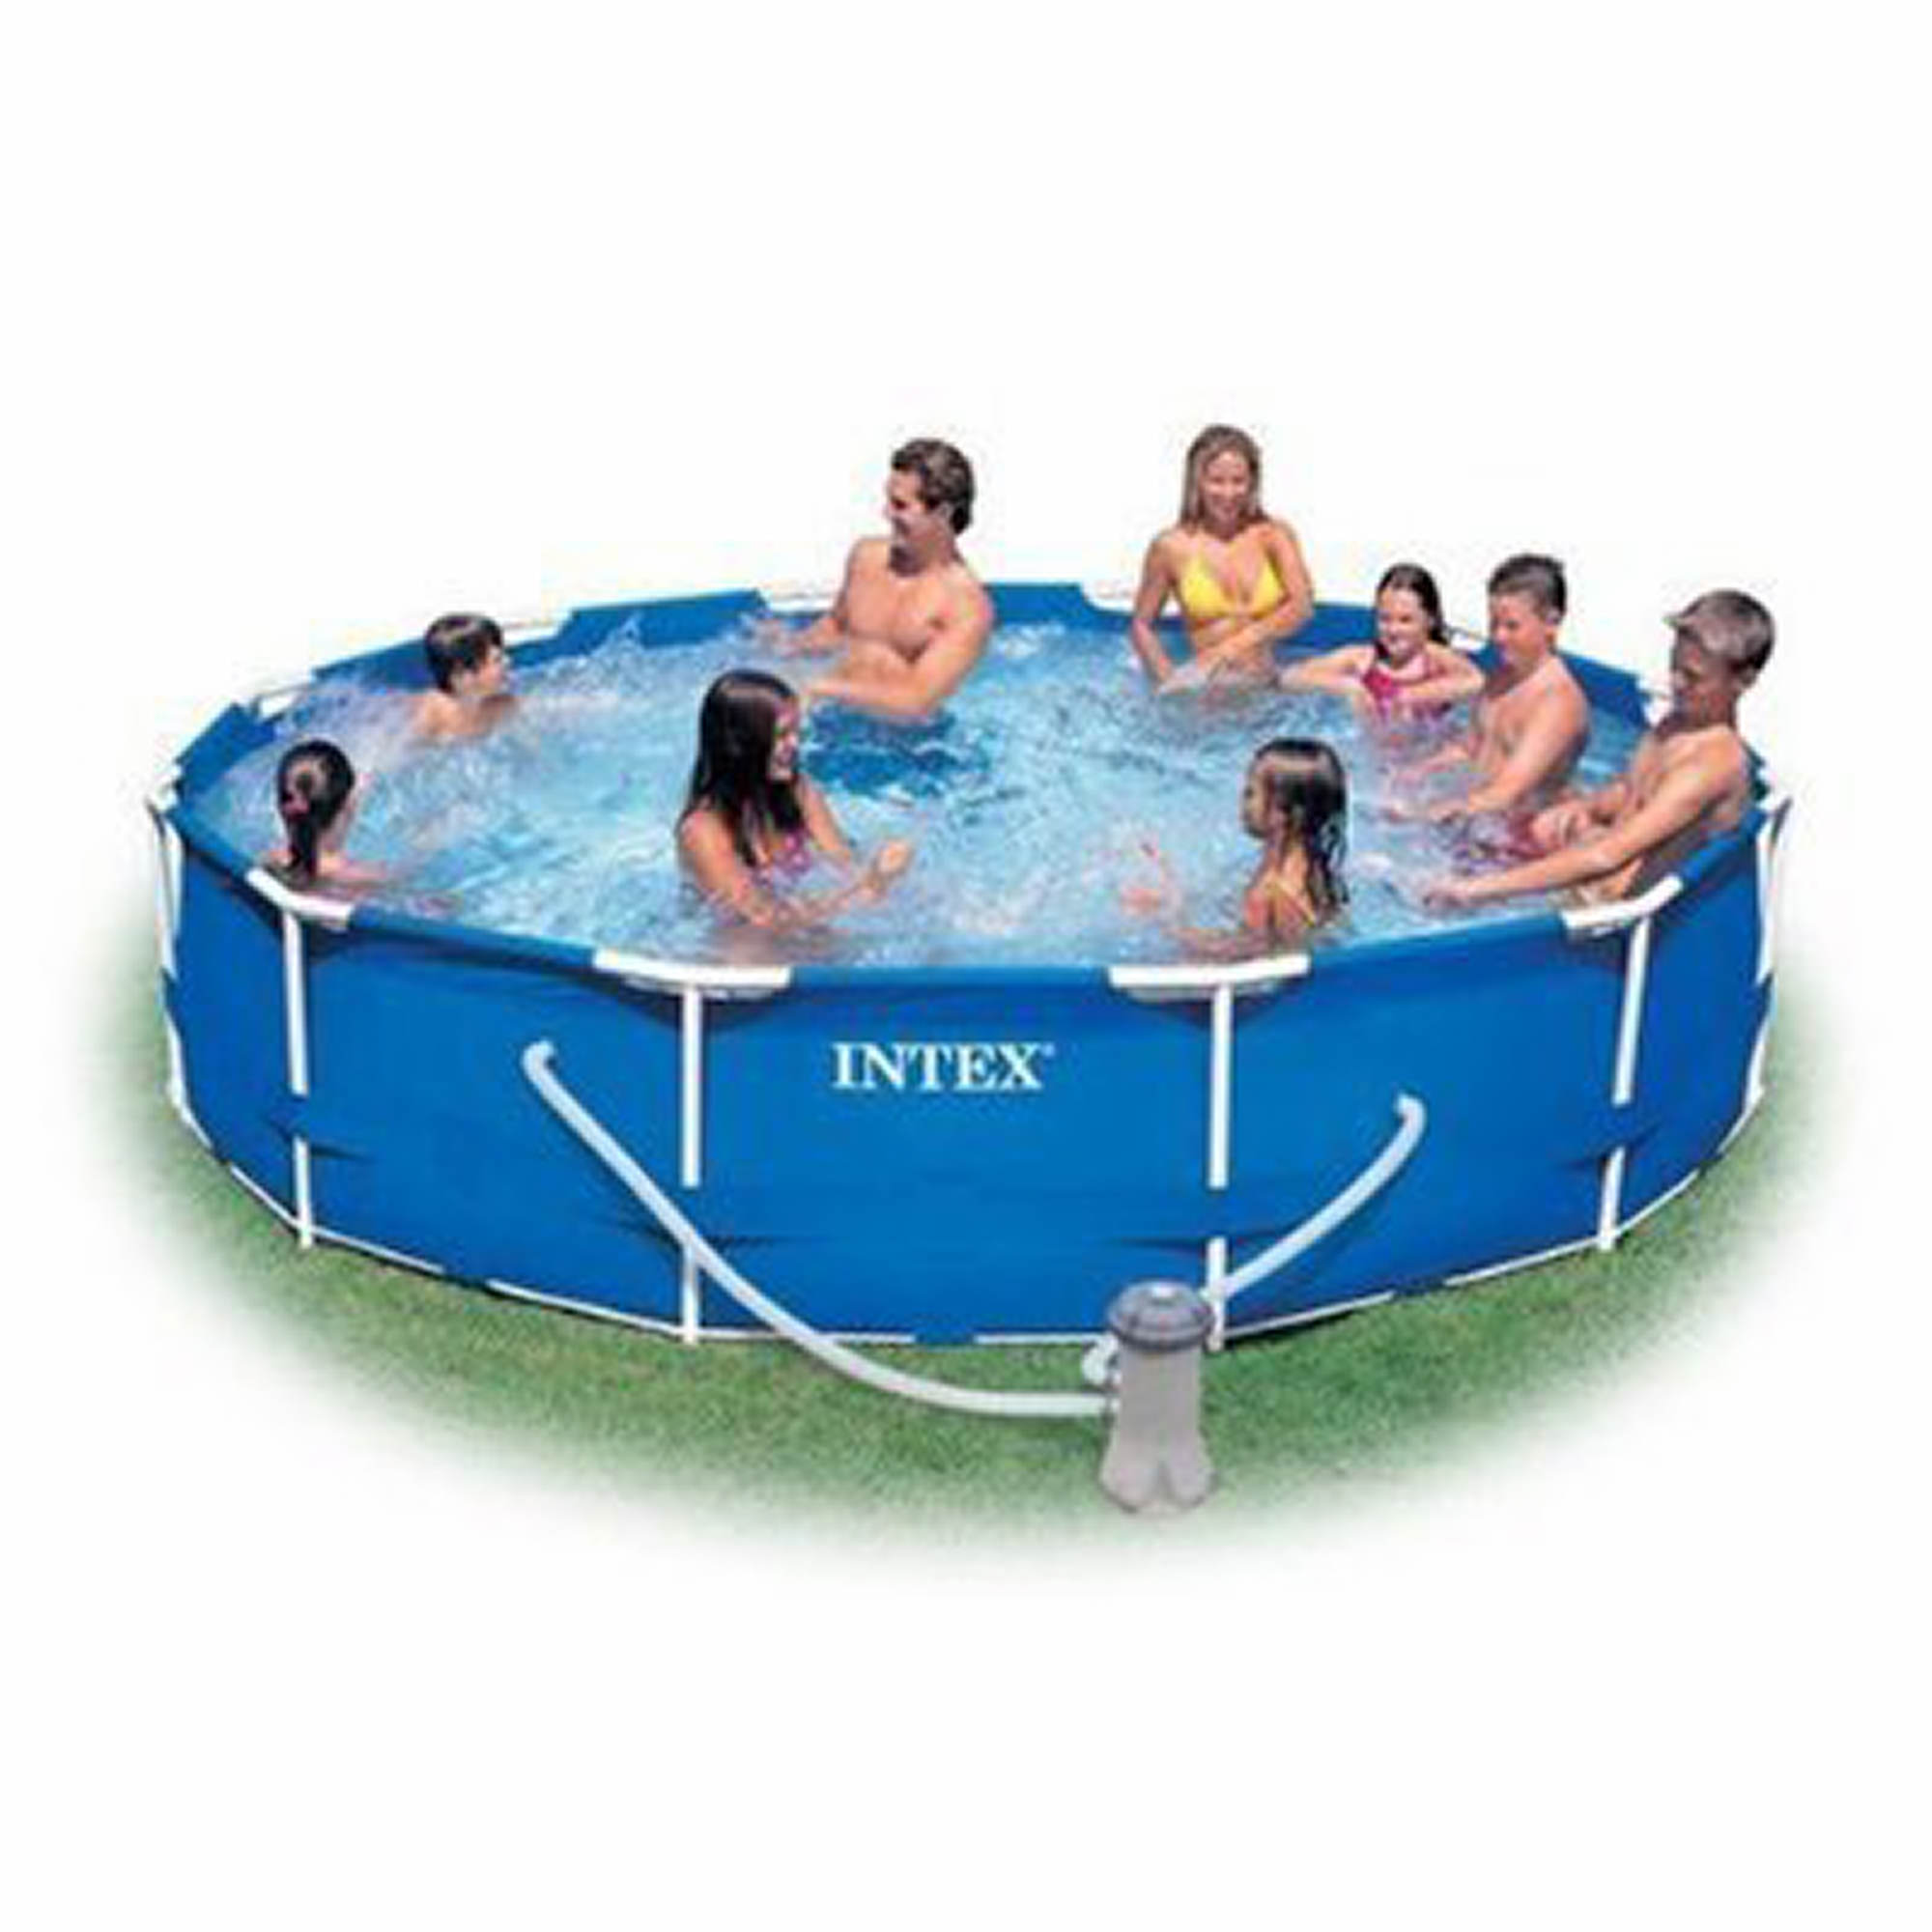 intex 12 x 30 round aboveground metal frame pool